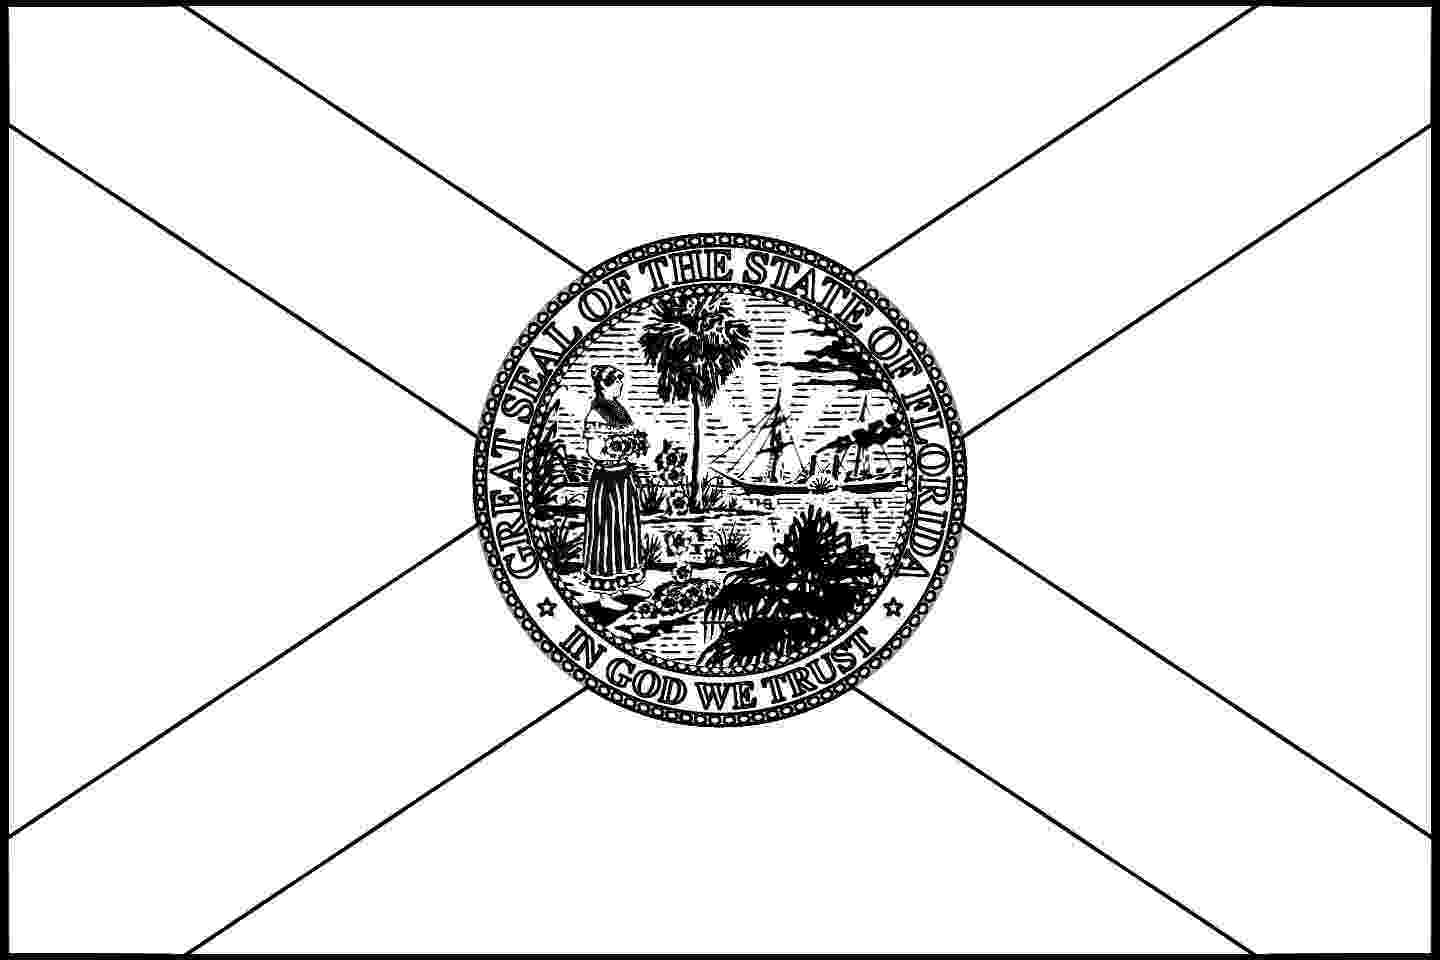 florida state flag coloring page usa printables florida state flag state of florida state florida flag page coloring